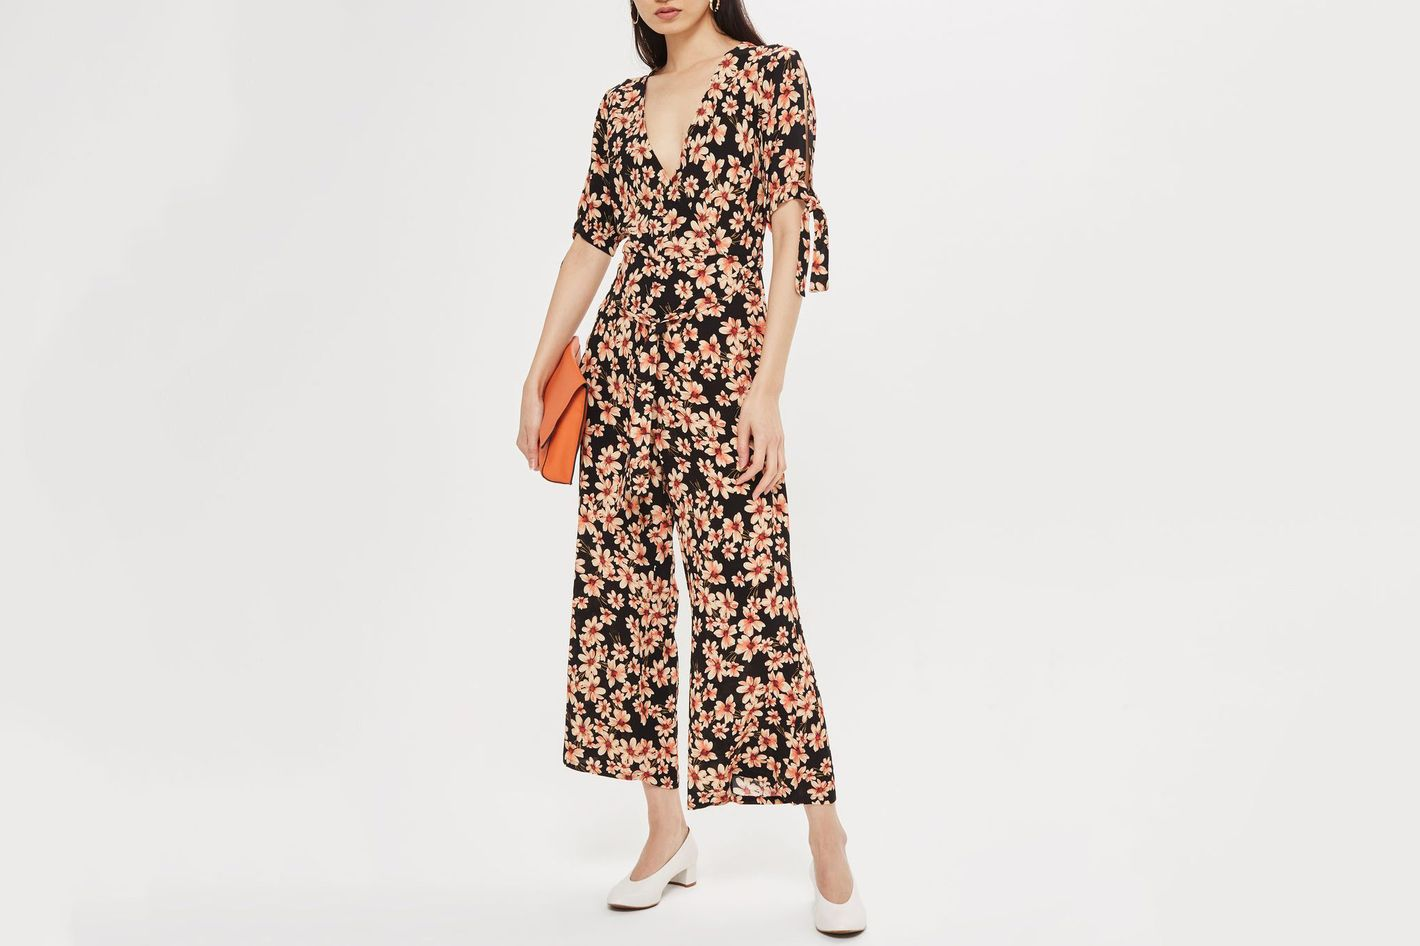 15 Dressy Jumpsuits to Wear to a Wedding 2018 b3fcc7f64